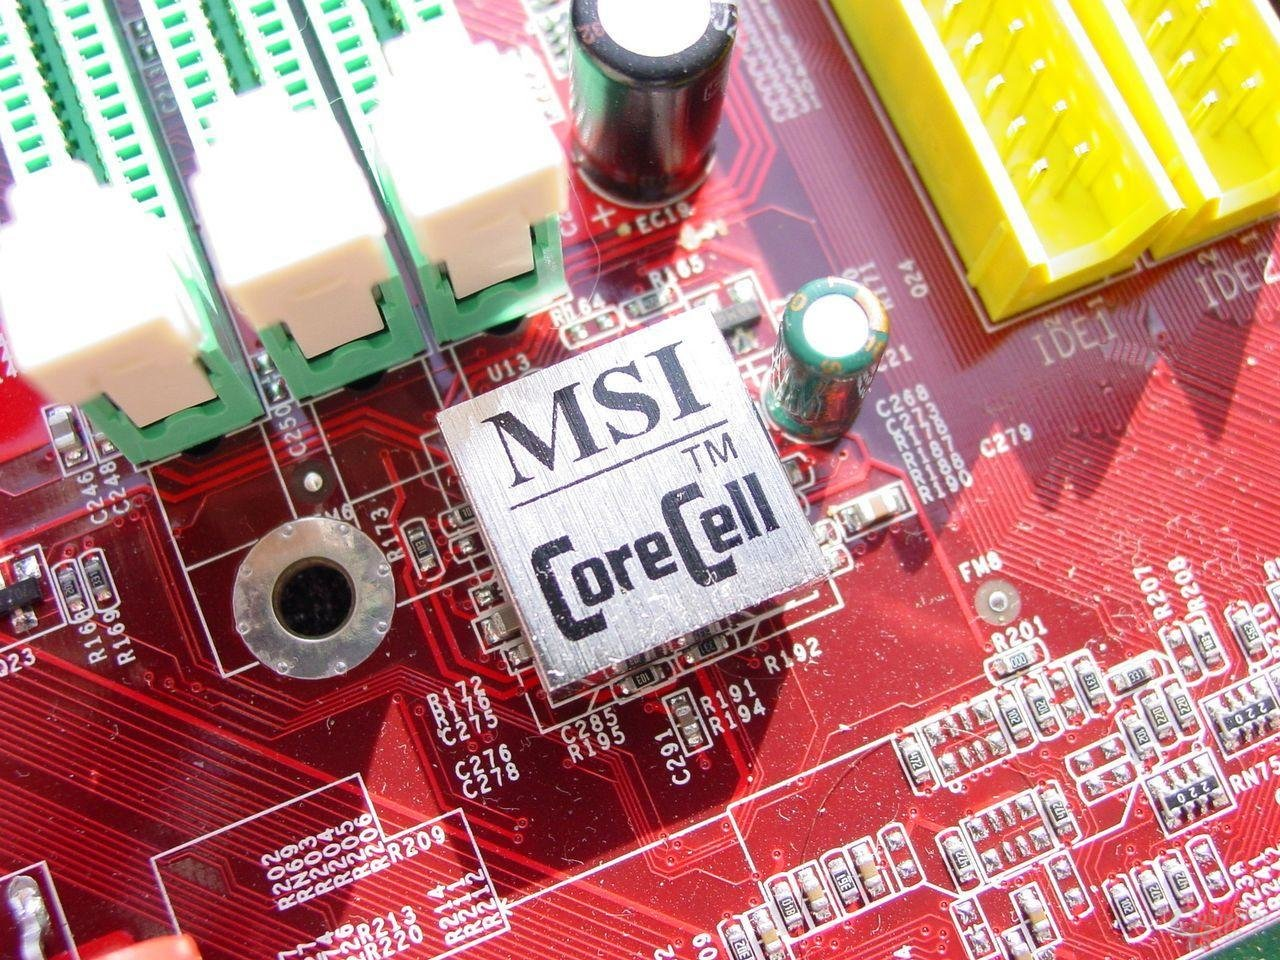 MSI CoreCell